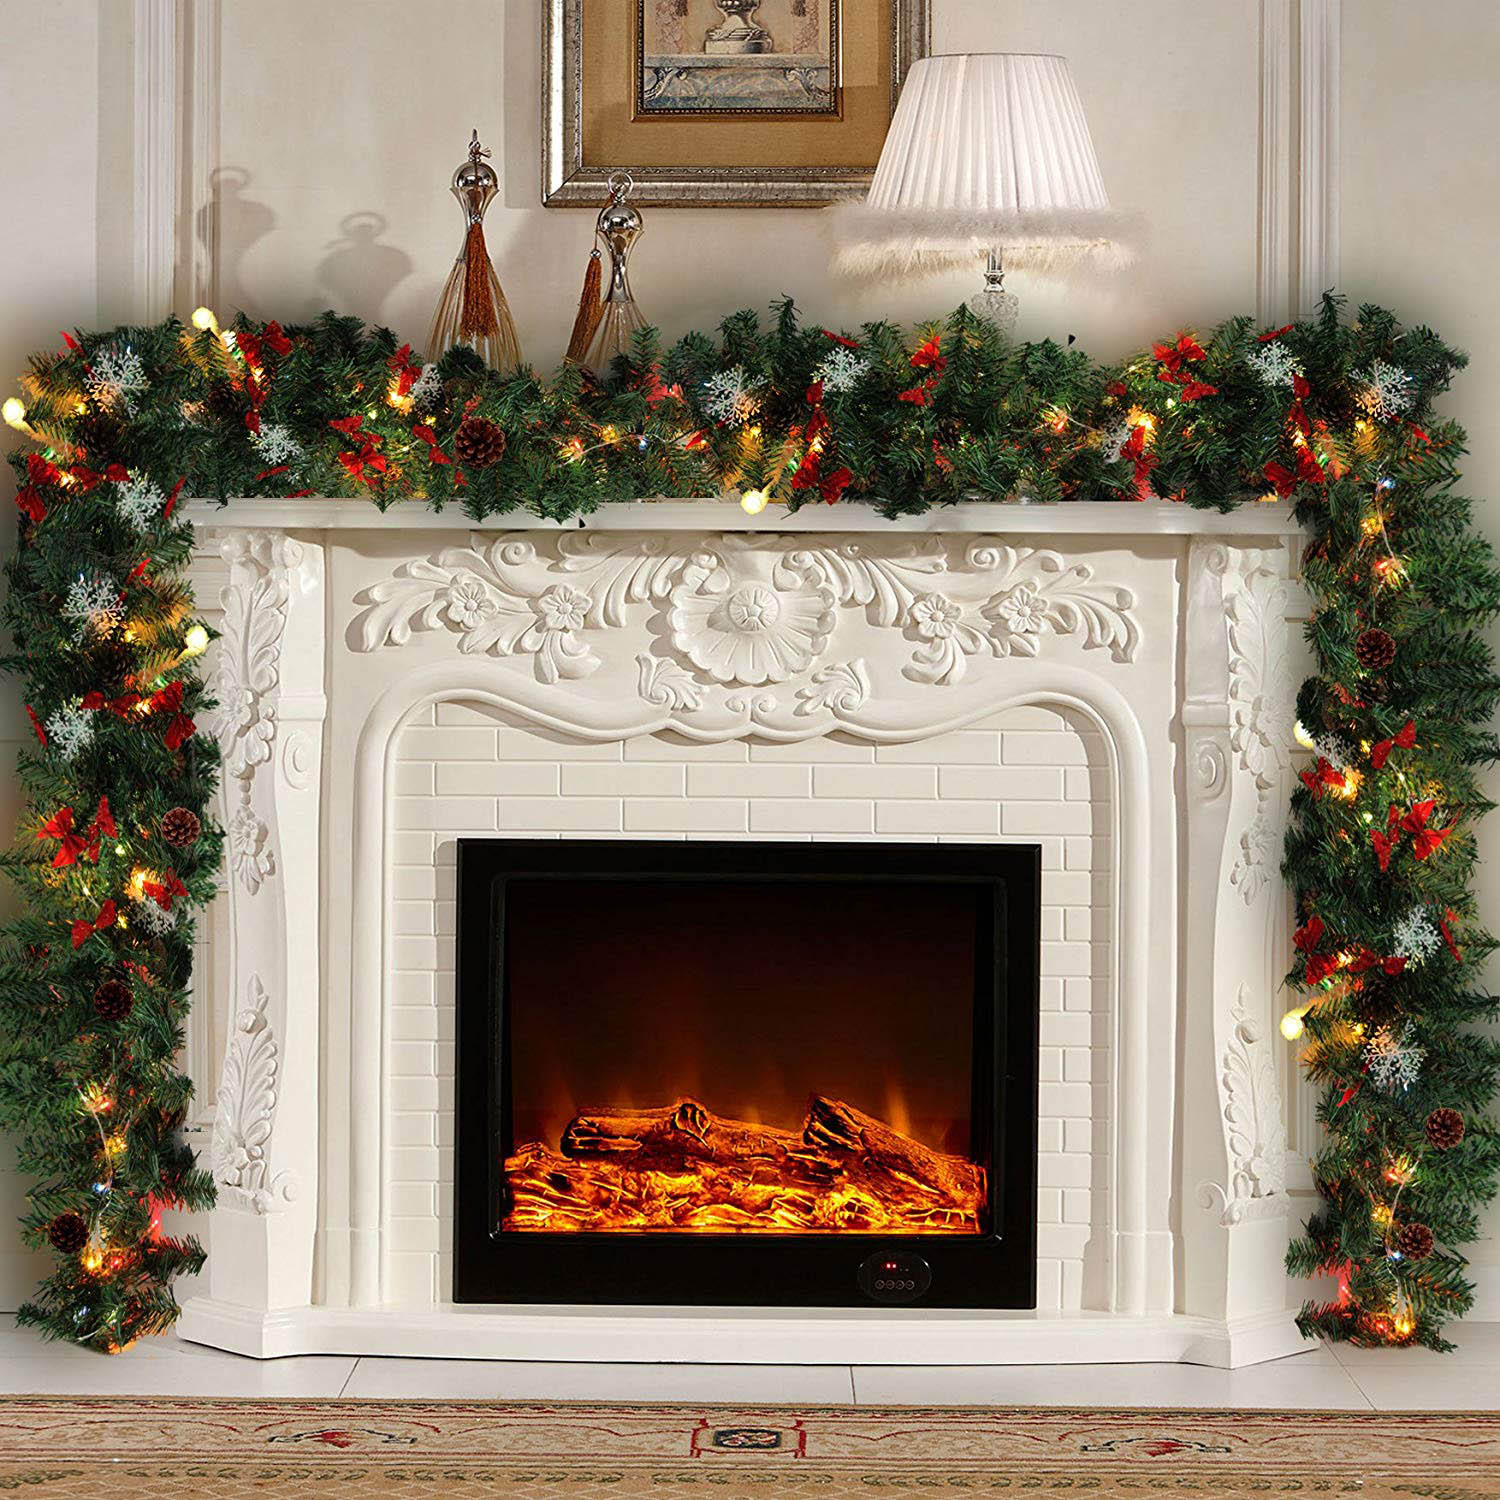 Fireplace Christmas.Us 17 8 13 Off 9ft 270cm Plain Green Christmas Garland With Warm White Led Light Artificial Wreath Fireplace Xmas Tree Decoration Hot In Pendant